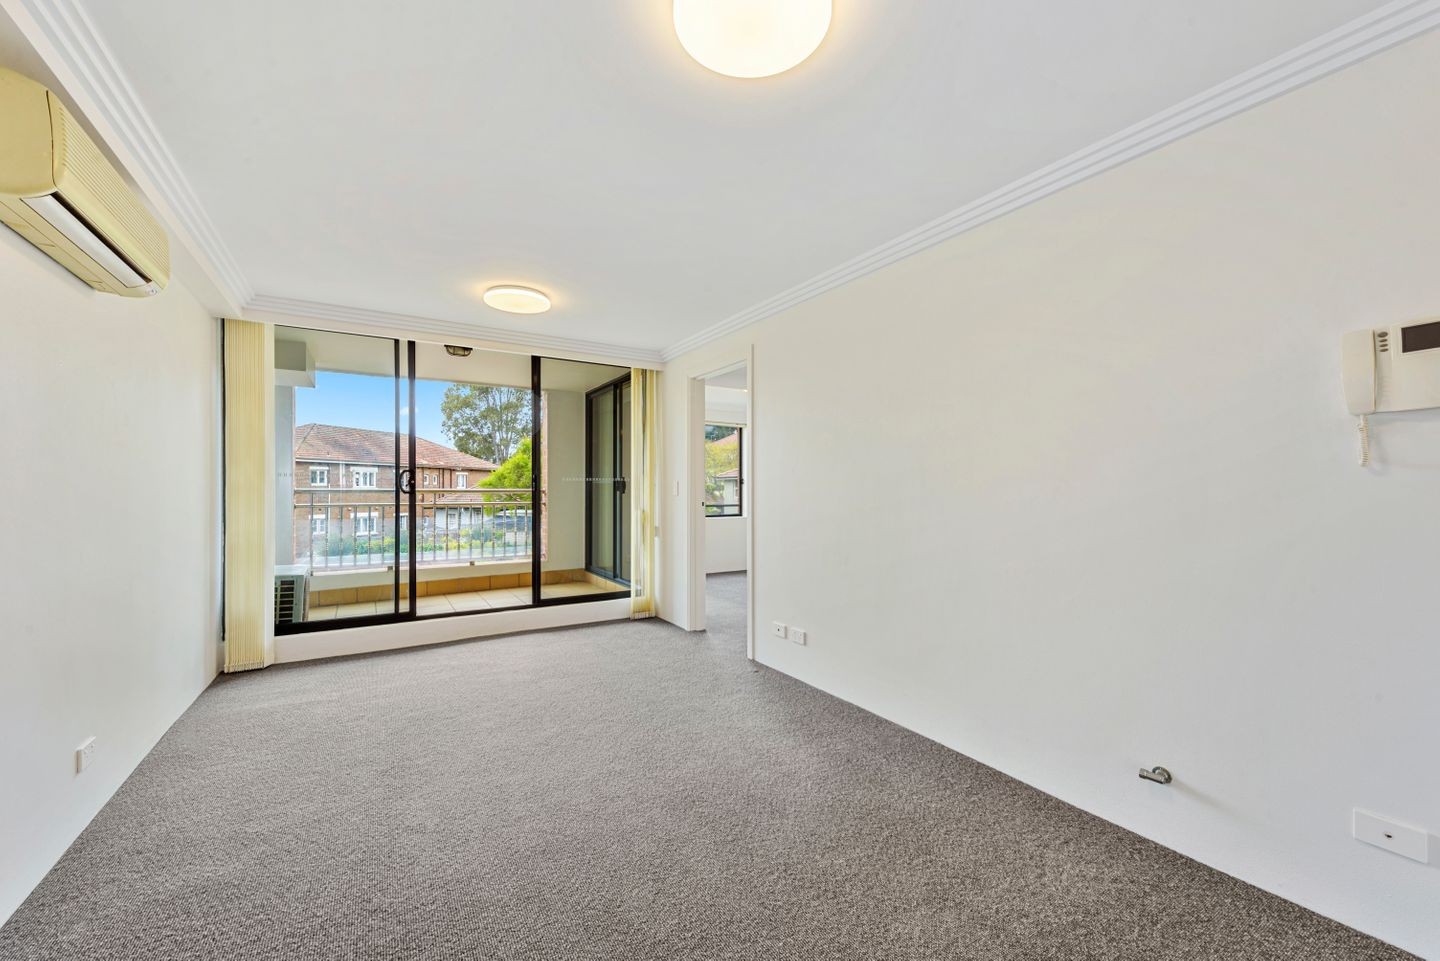 509/34-52 Alison Road, Randwick NSW 2031 - Apartment For Lease